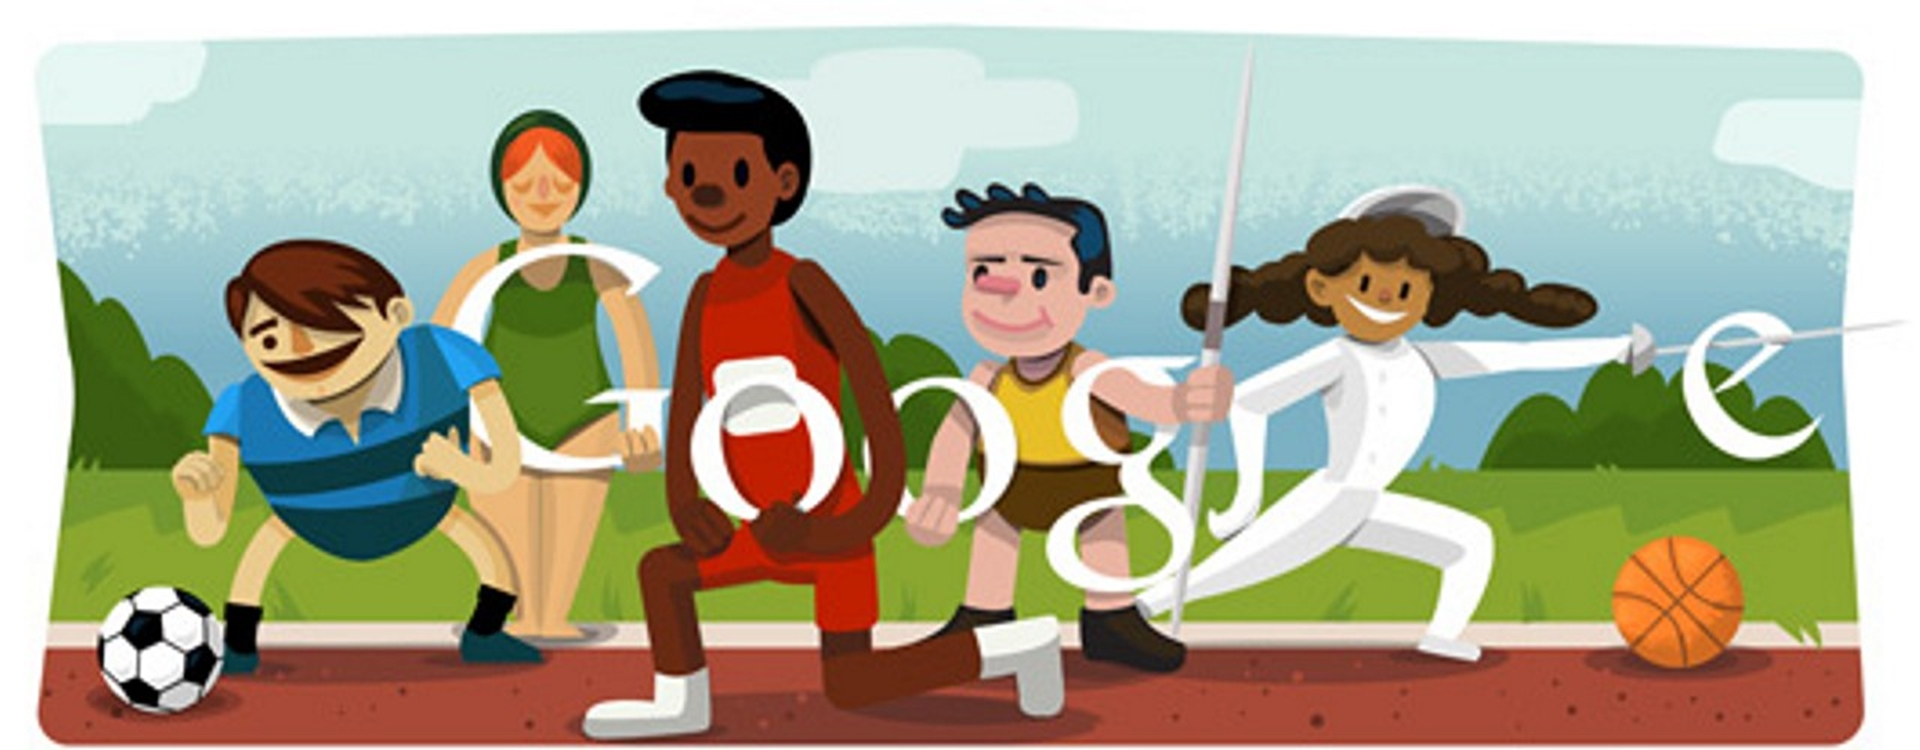 Opening ceremony London 2012 Google Doodle